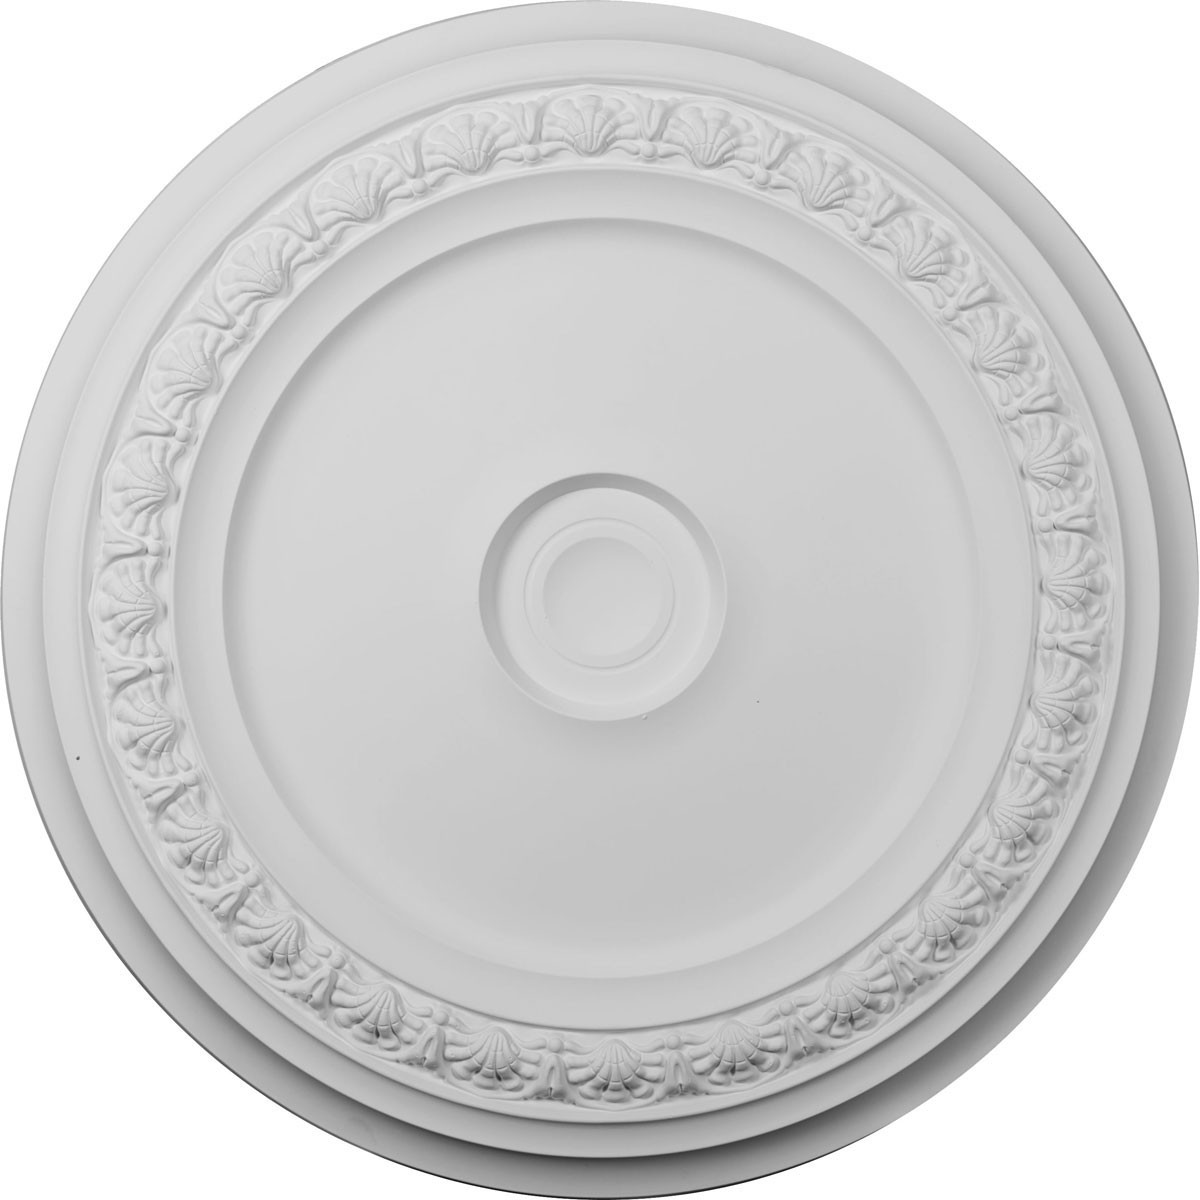 """EM-CM31CA - 31 1/8""""OD x 1 1/2""""P Carlsbad Ceiling Medallion (Fits Canopies up to 5 1/2"""")"""